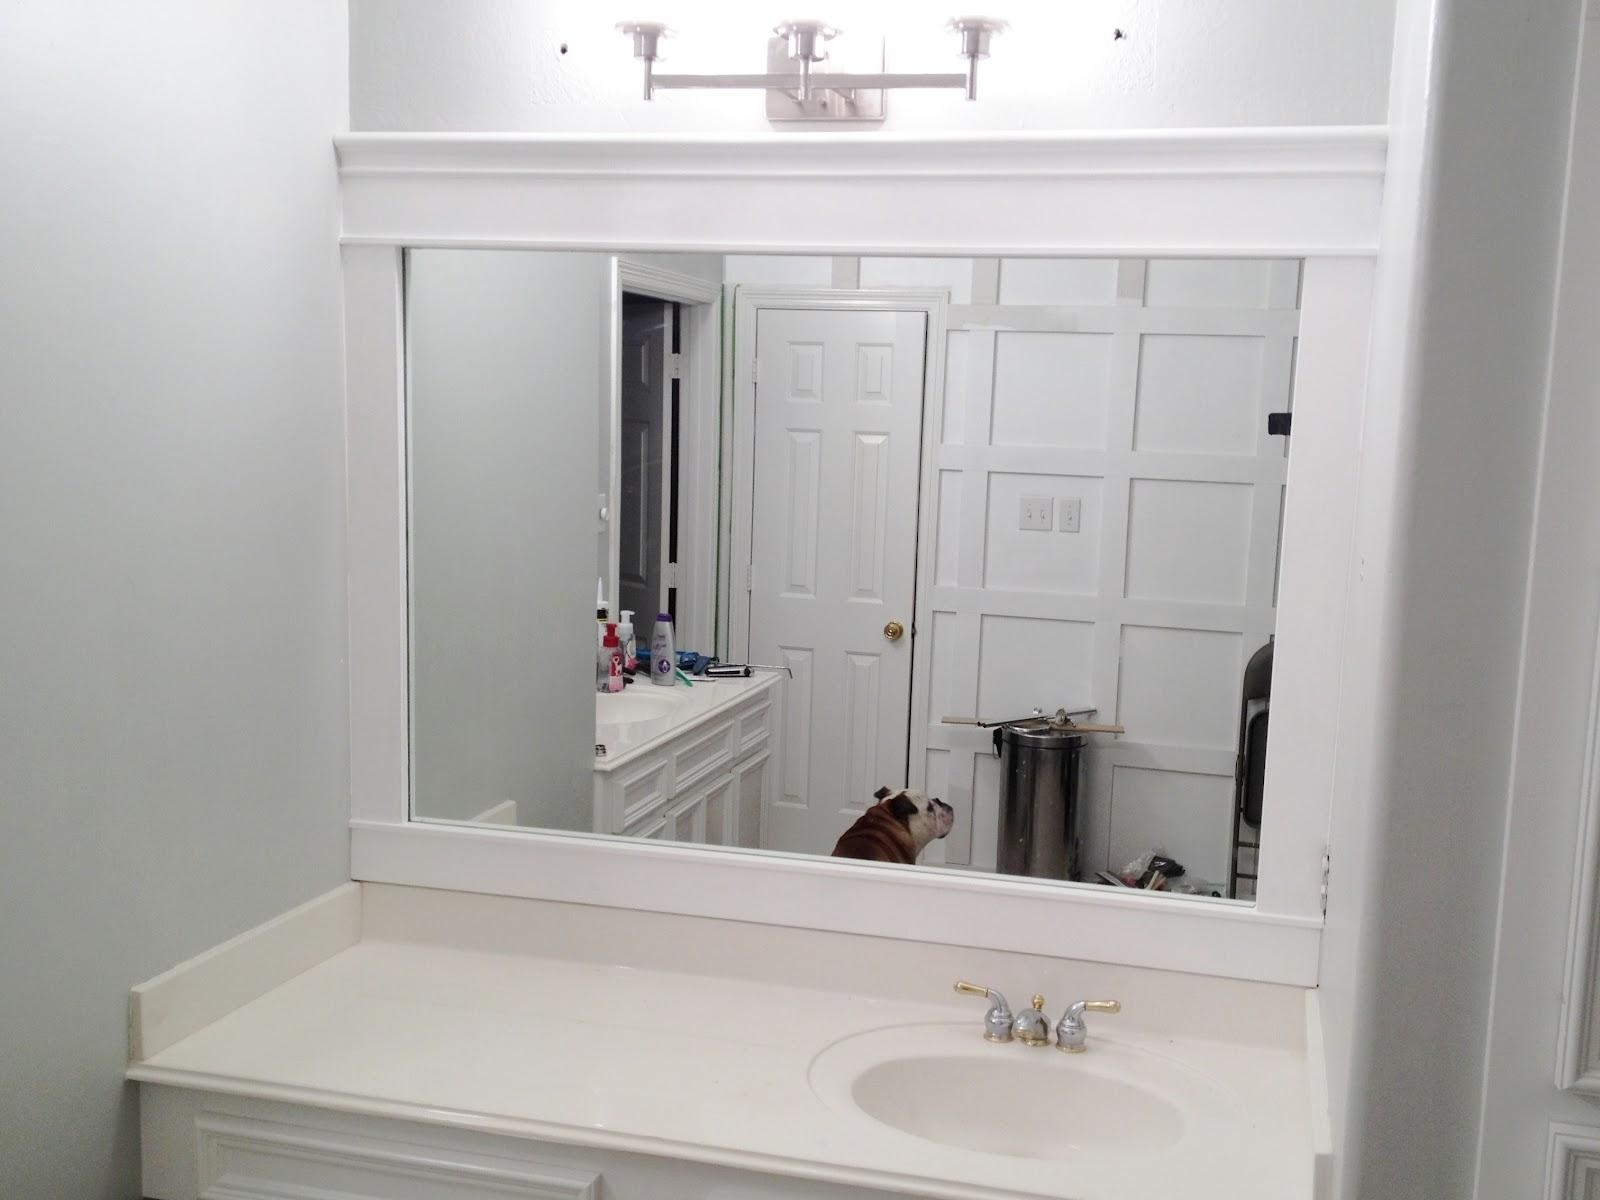 Oak Framed Bathroom Mirrors 118 Stunning Decor With Small Vanity Inside Oak Framed Wall Mirror (Image 4 of 20)